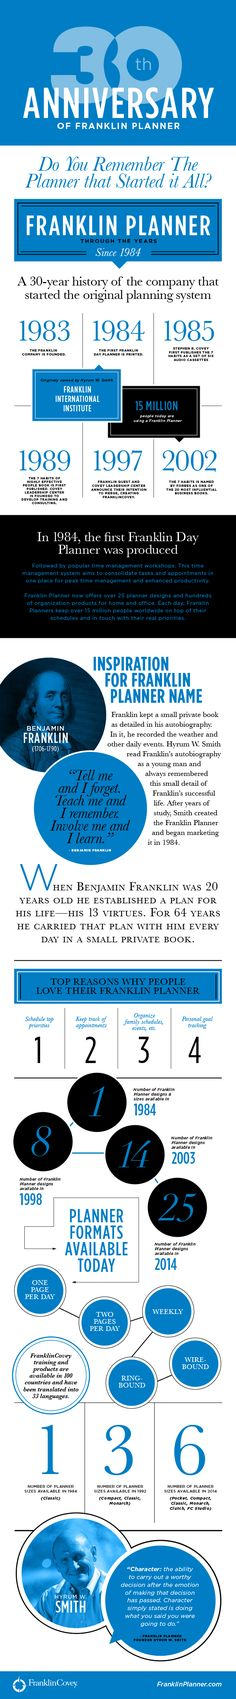 30 years of the Franklin Planner